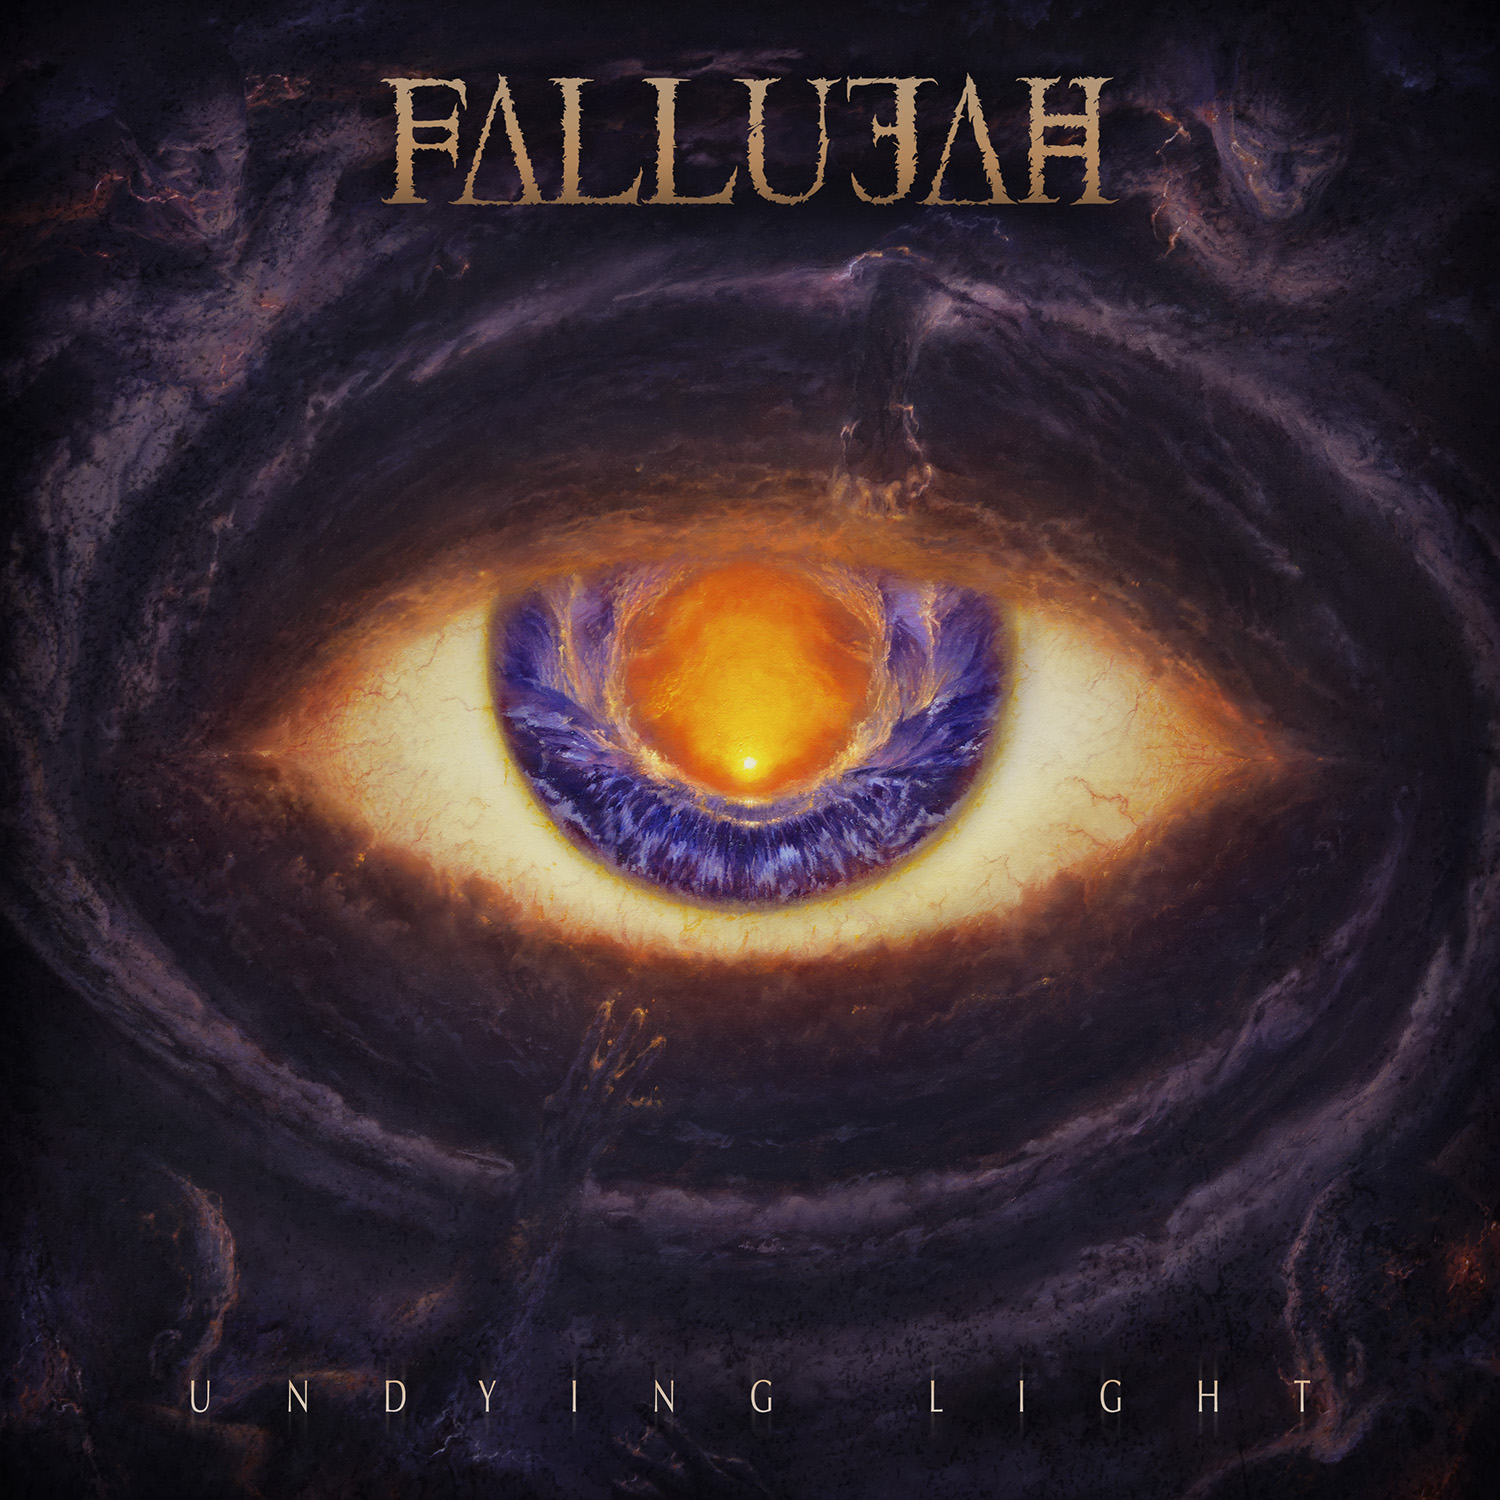 Fallujah - Undying Light - Album Cover